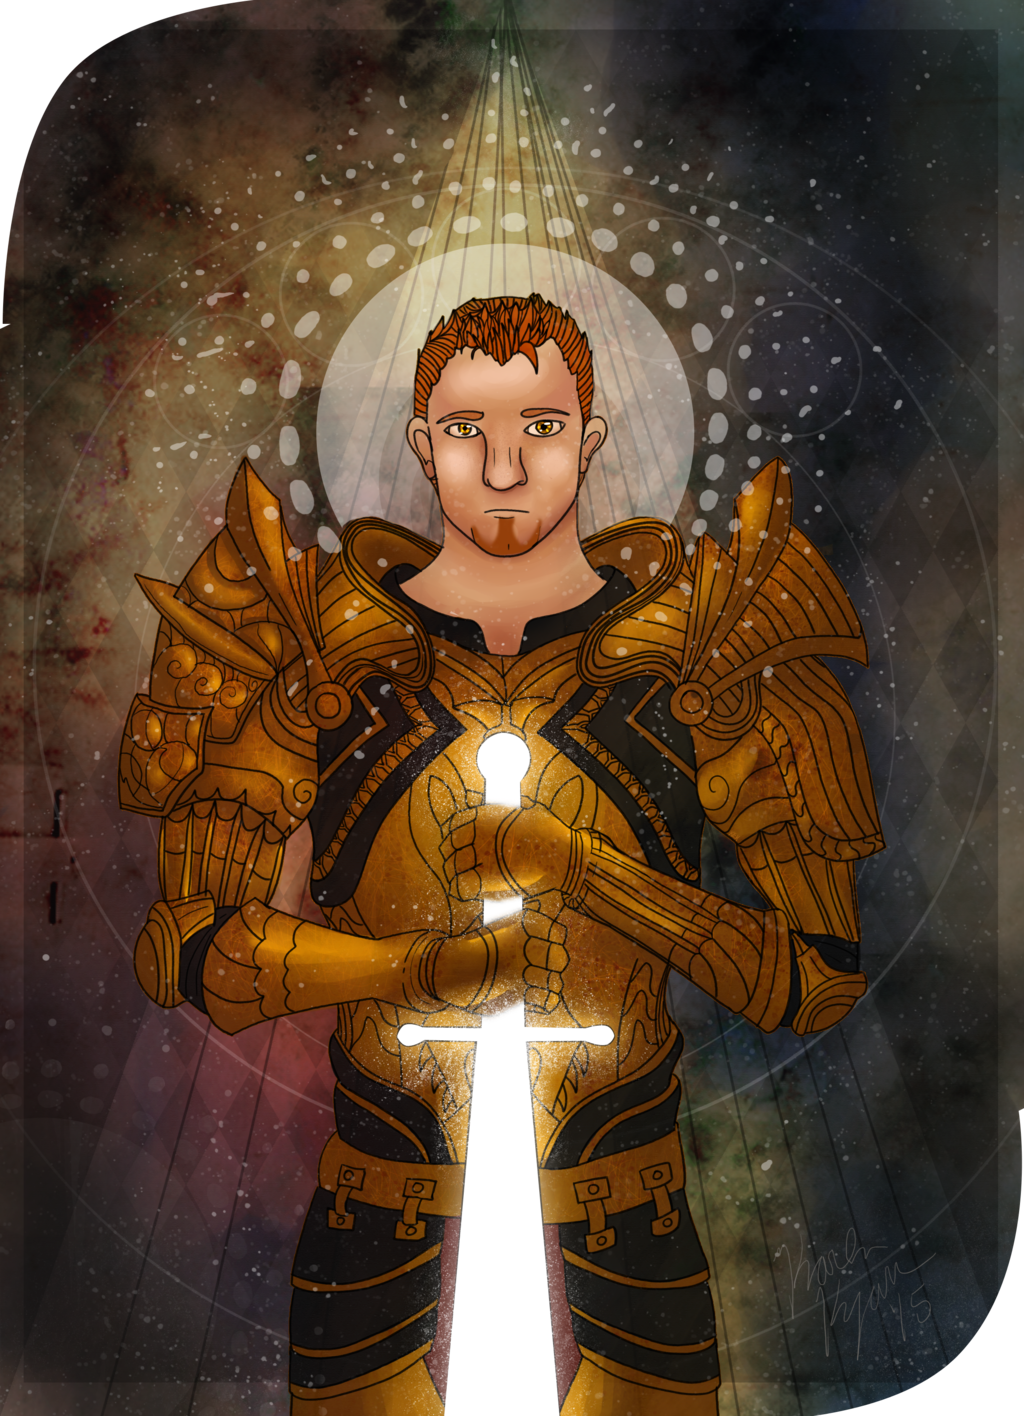 Most recent image: Alistair Theirin